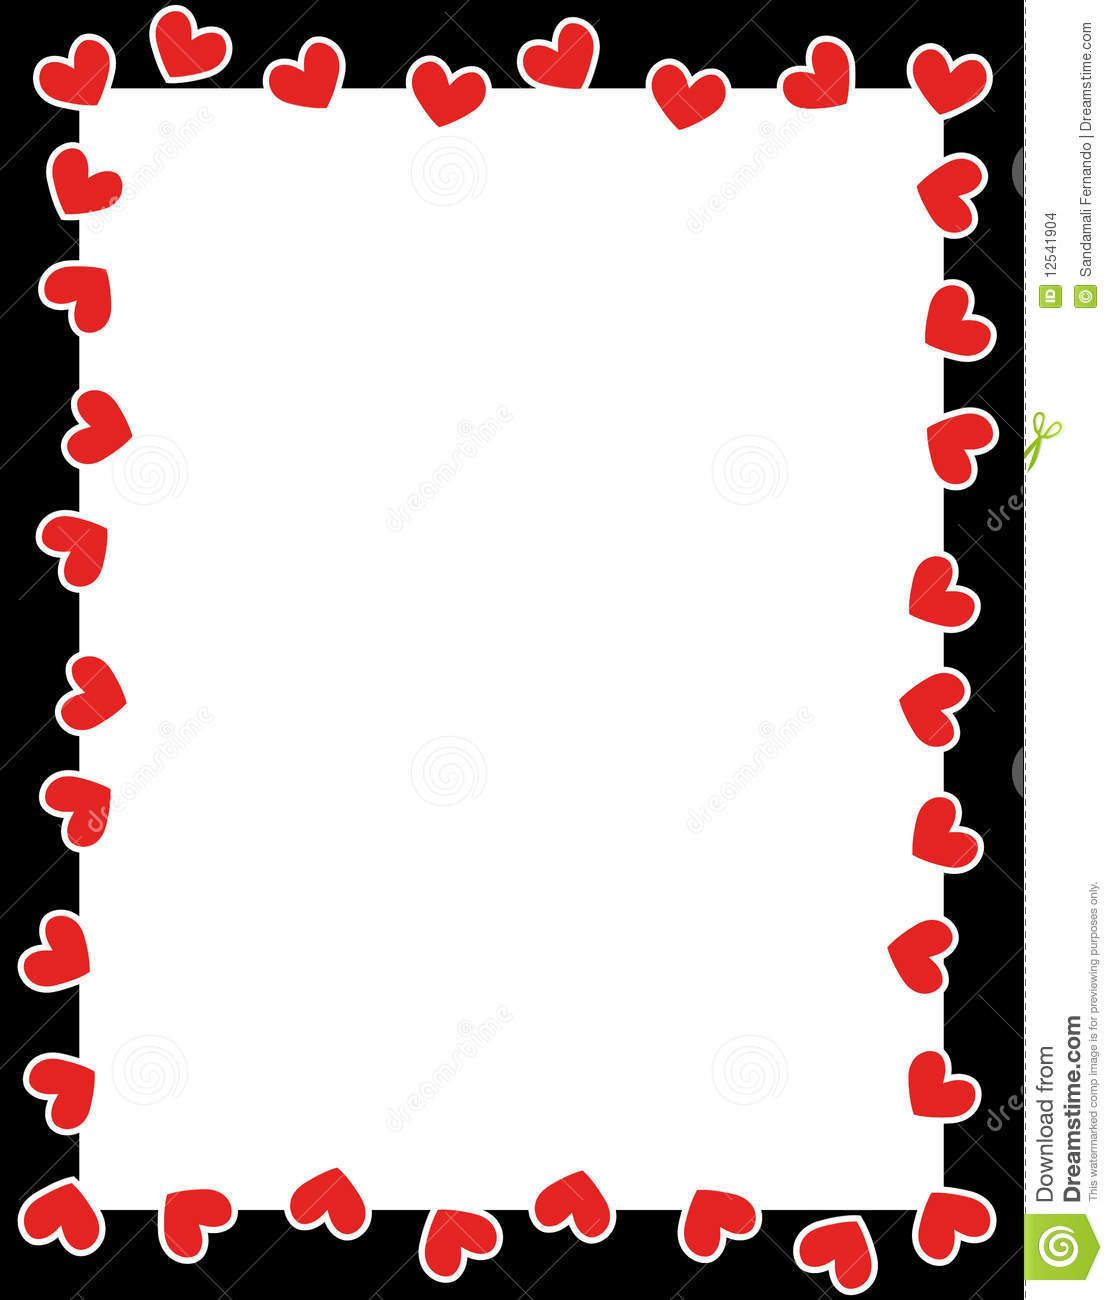 valentines day clip art valentine s day clip art borders by6lljsk rh pinterest com au